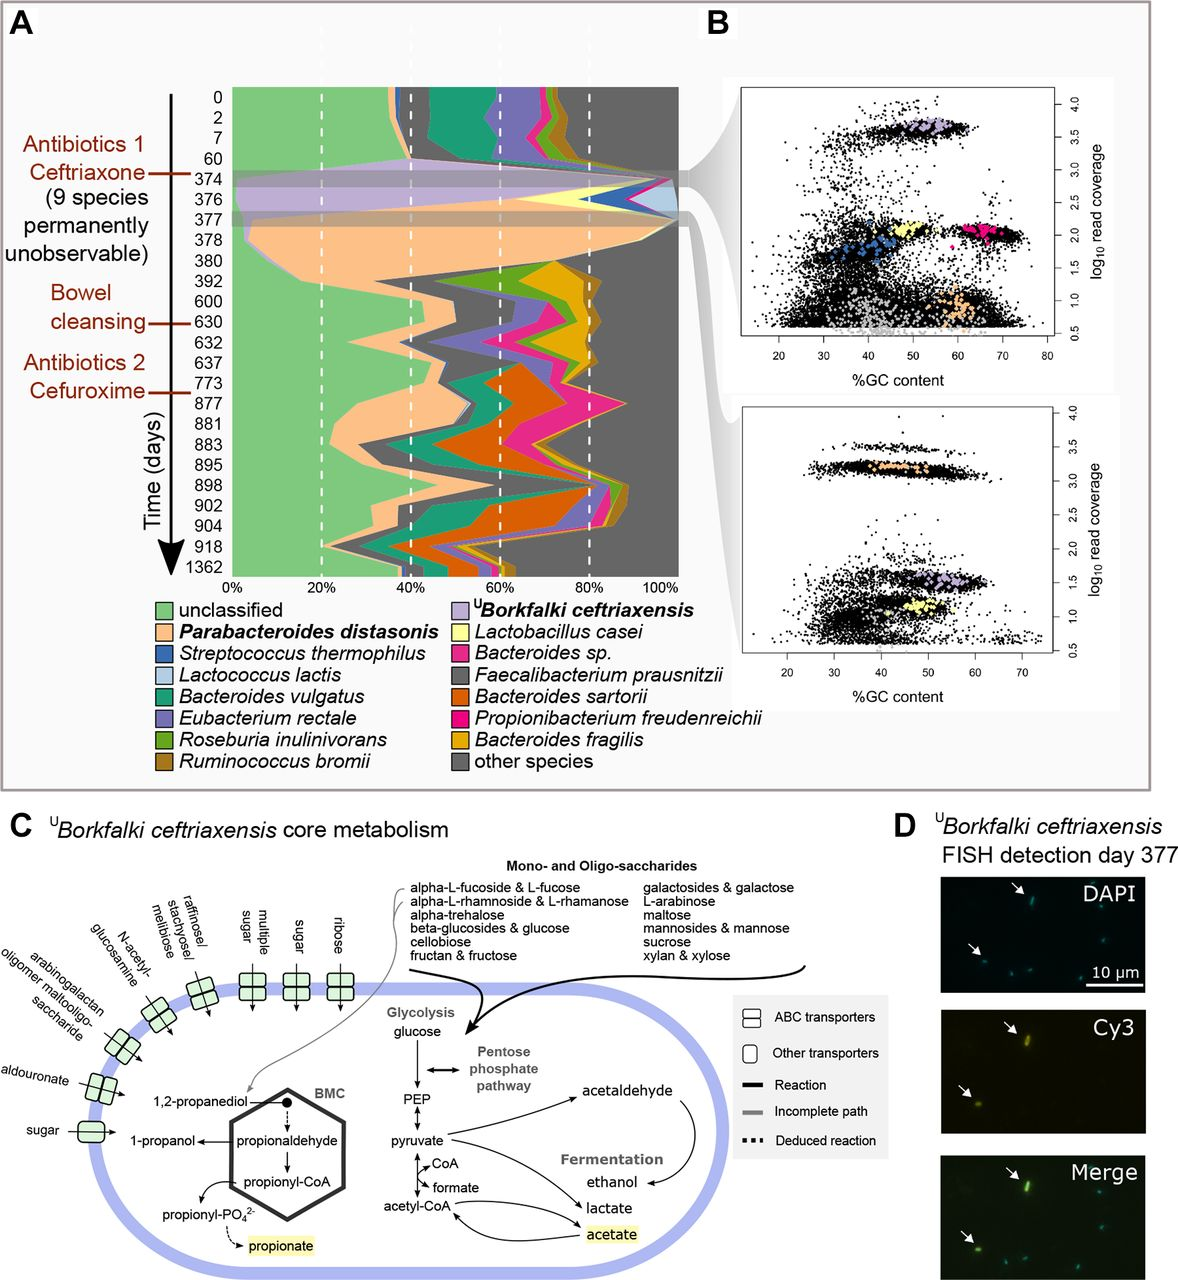 Antibiotics-induced monodominance of a novel gut bacterial